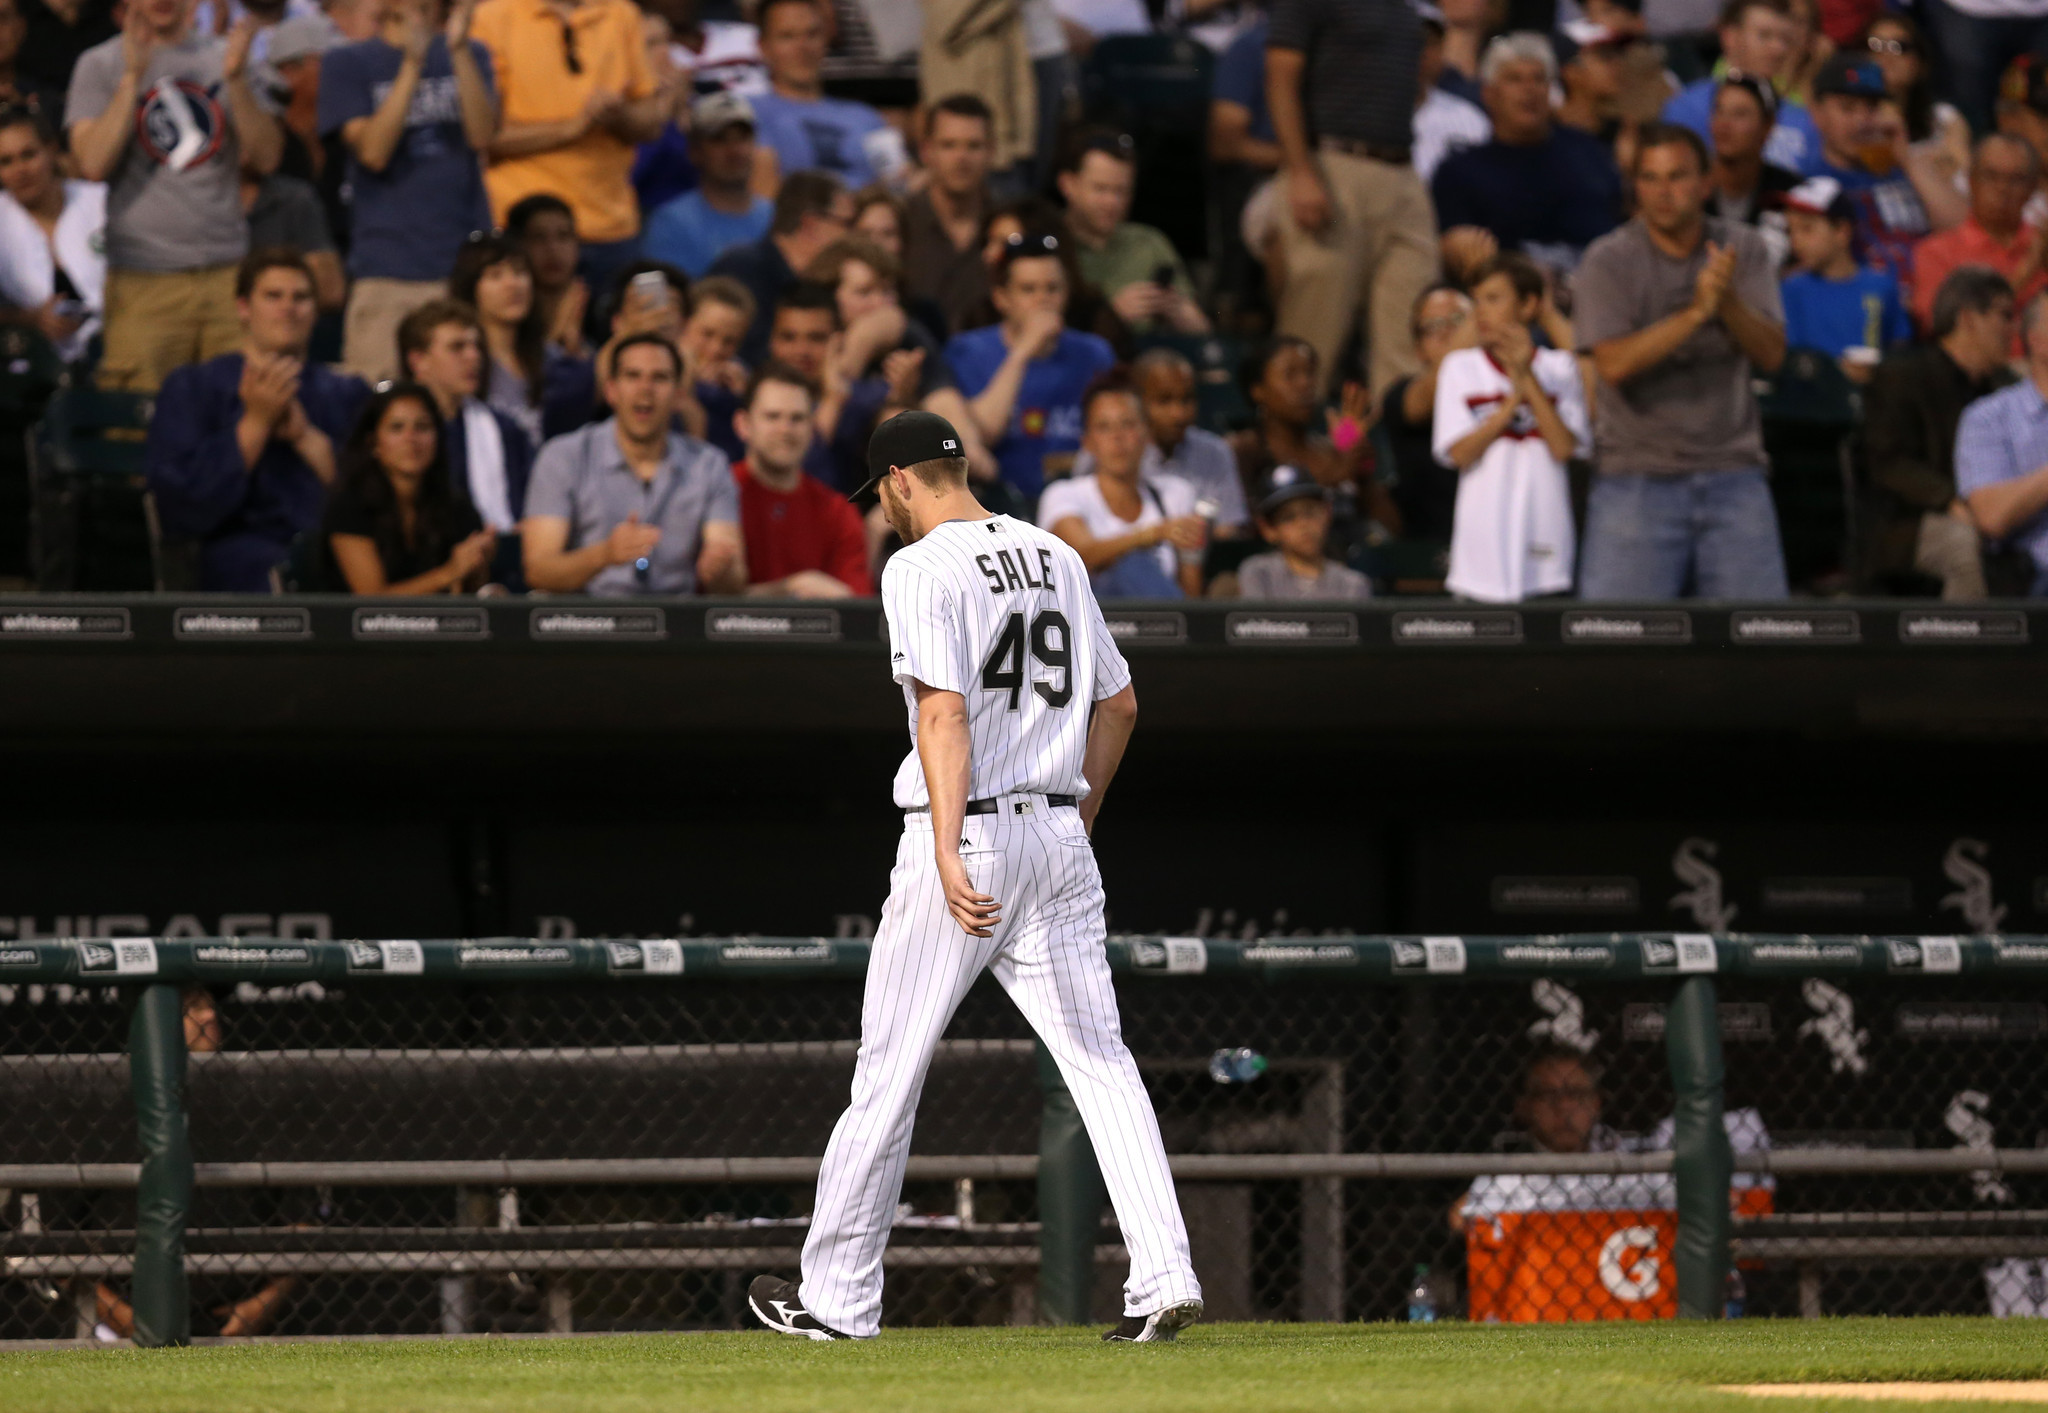 Ct-chris-sale-streak-ends-white-sox-spt-0525-20160524